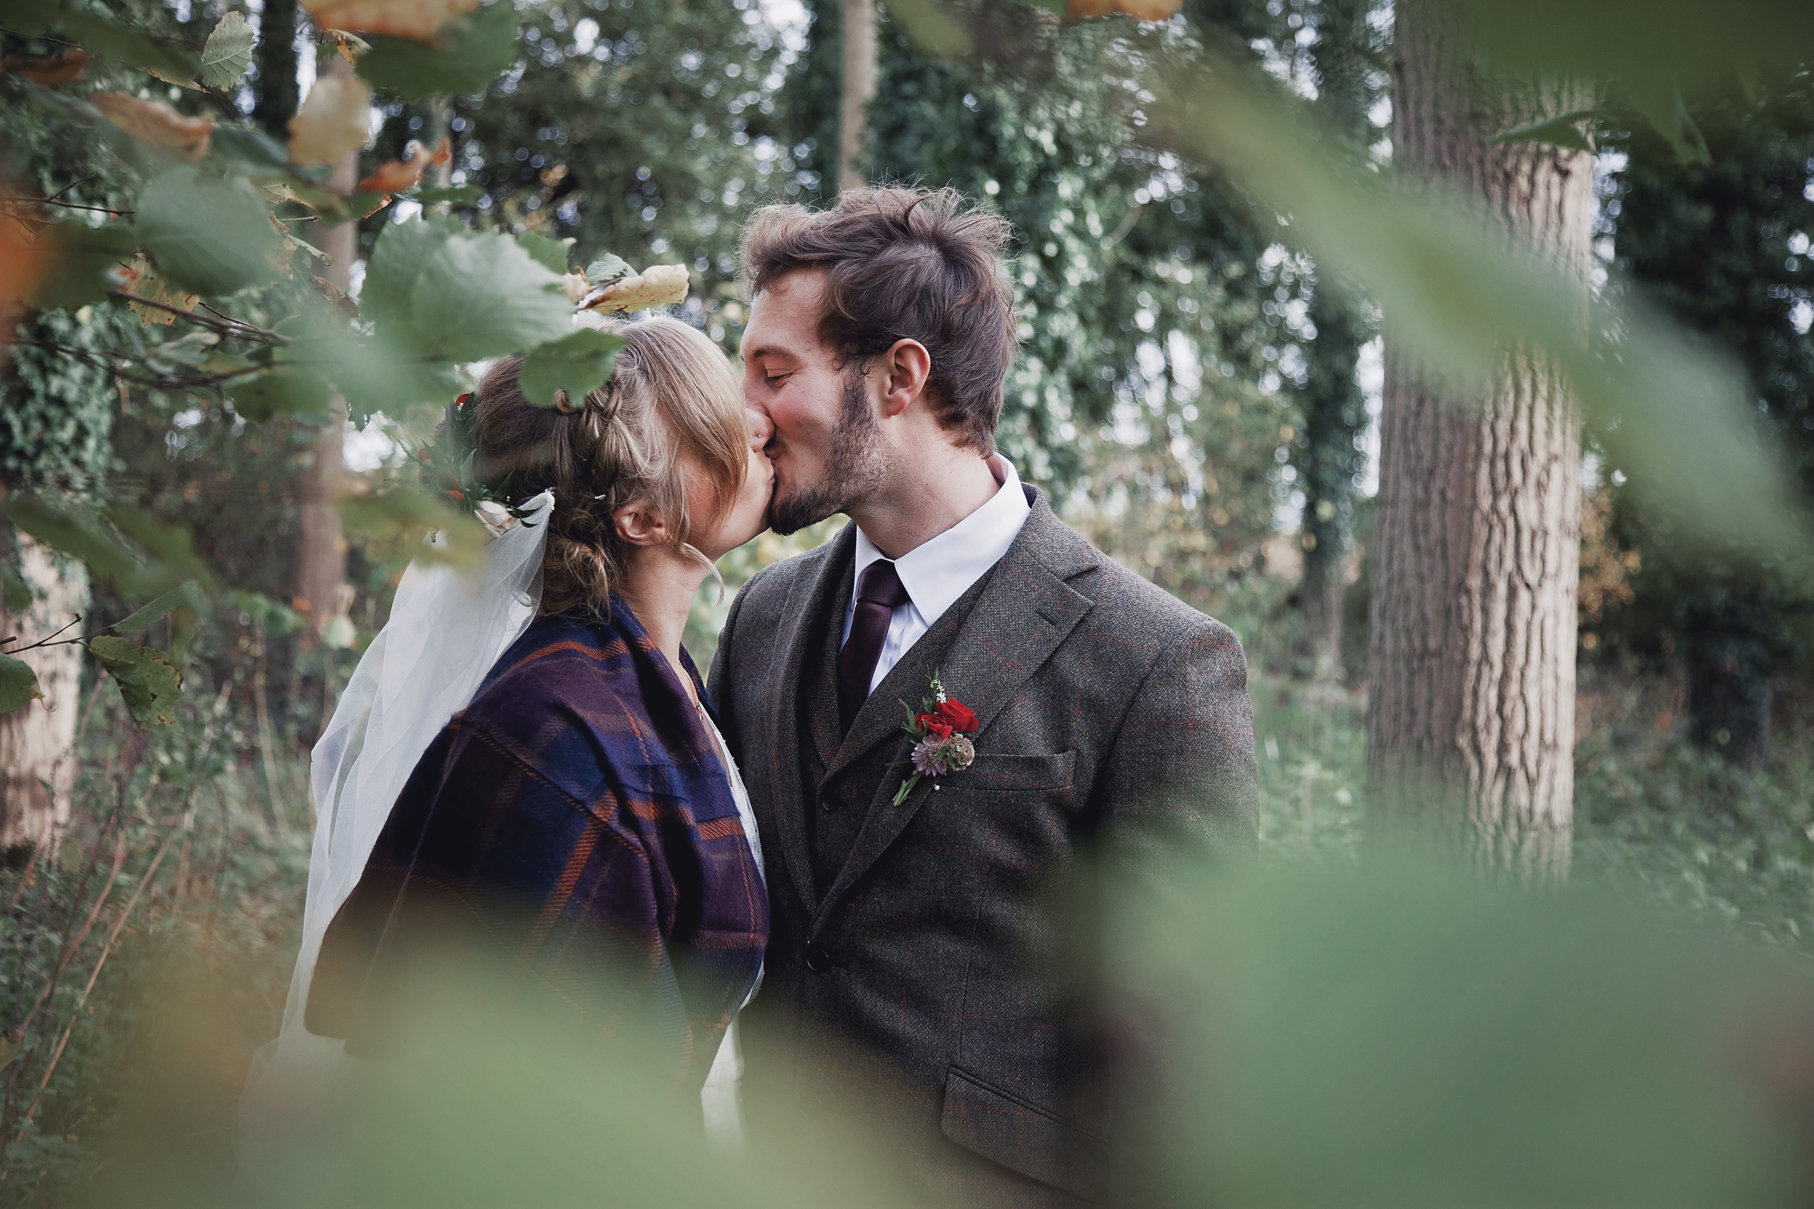 Ollie and Emily's Rustic DIY, Intimate Autumnal Wedding Day